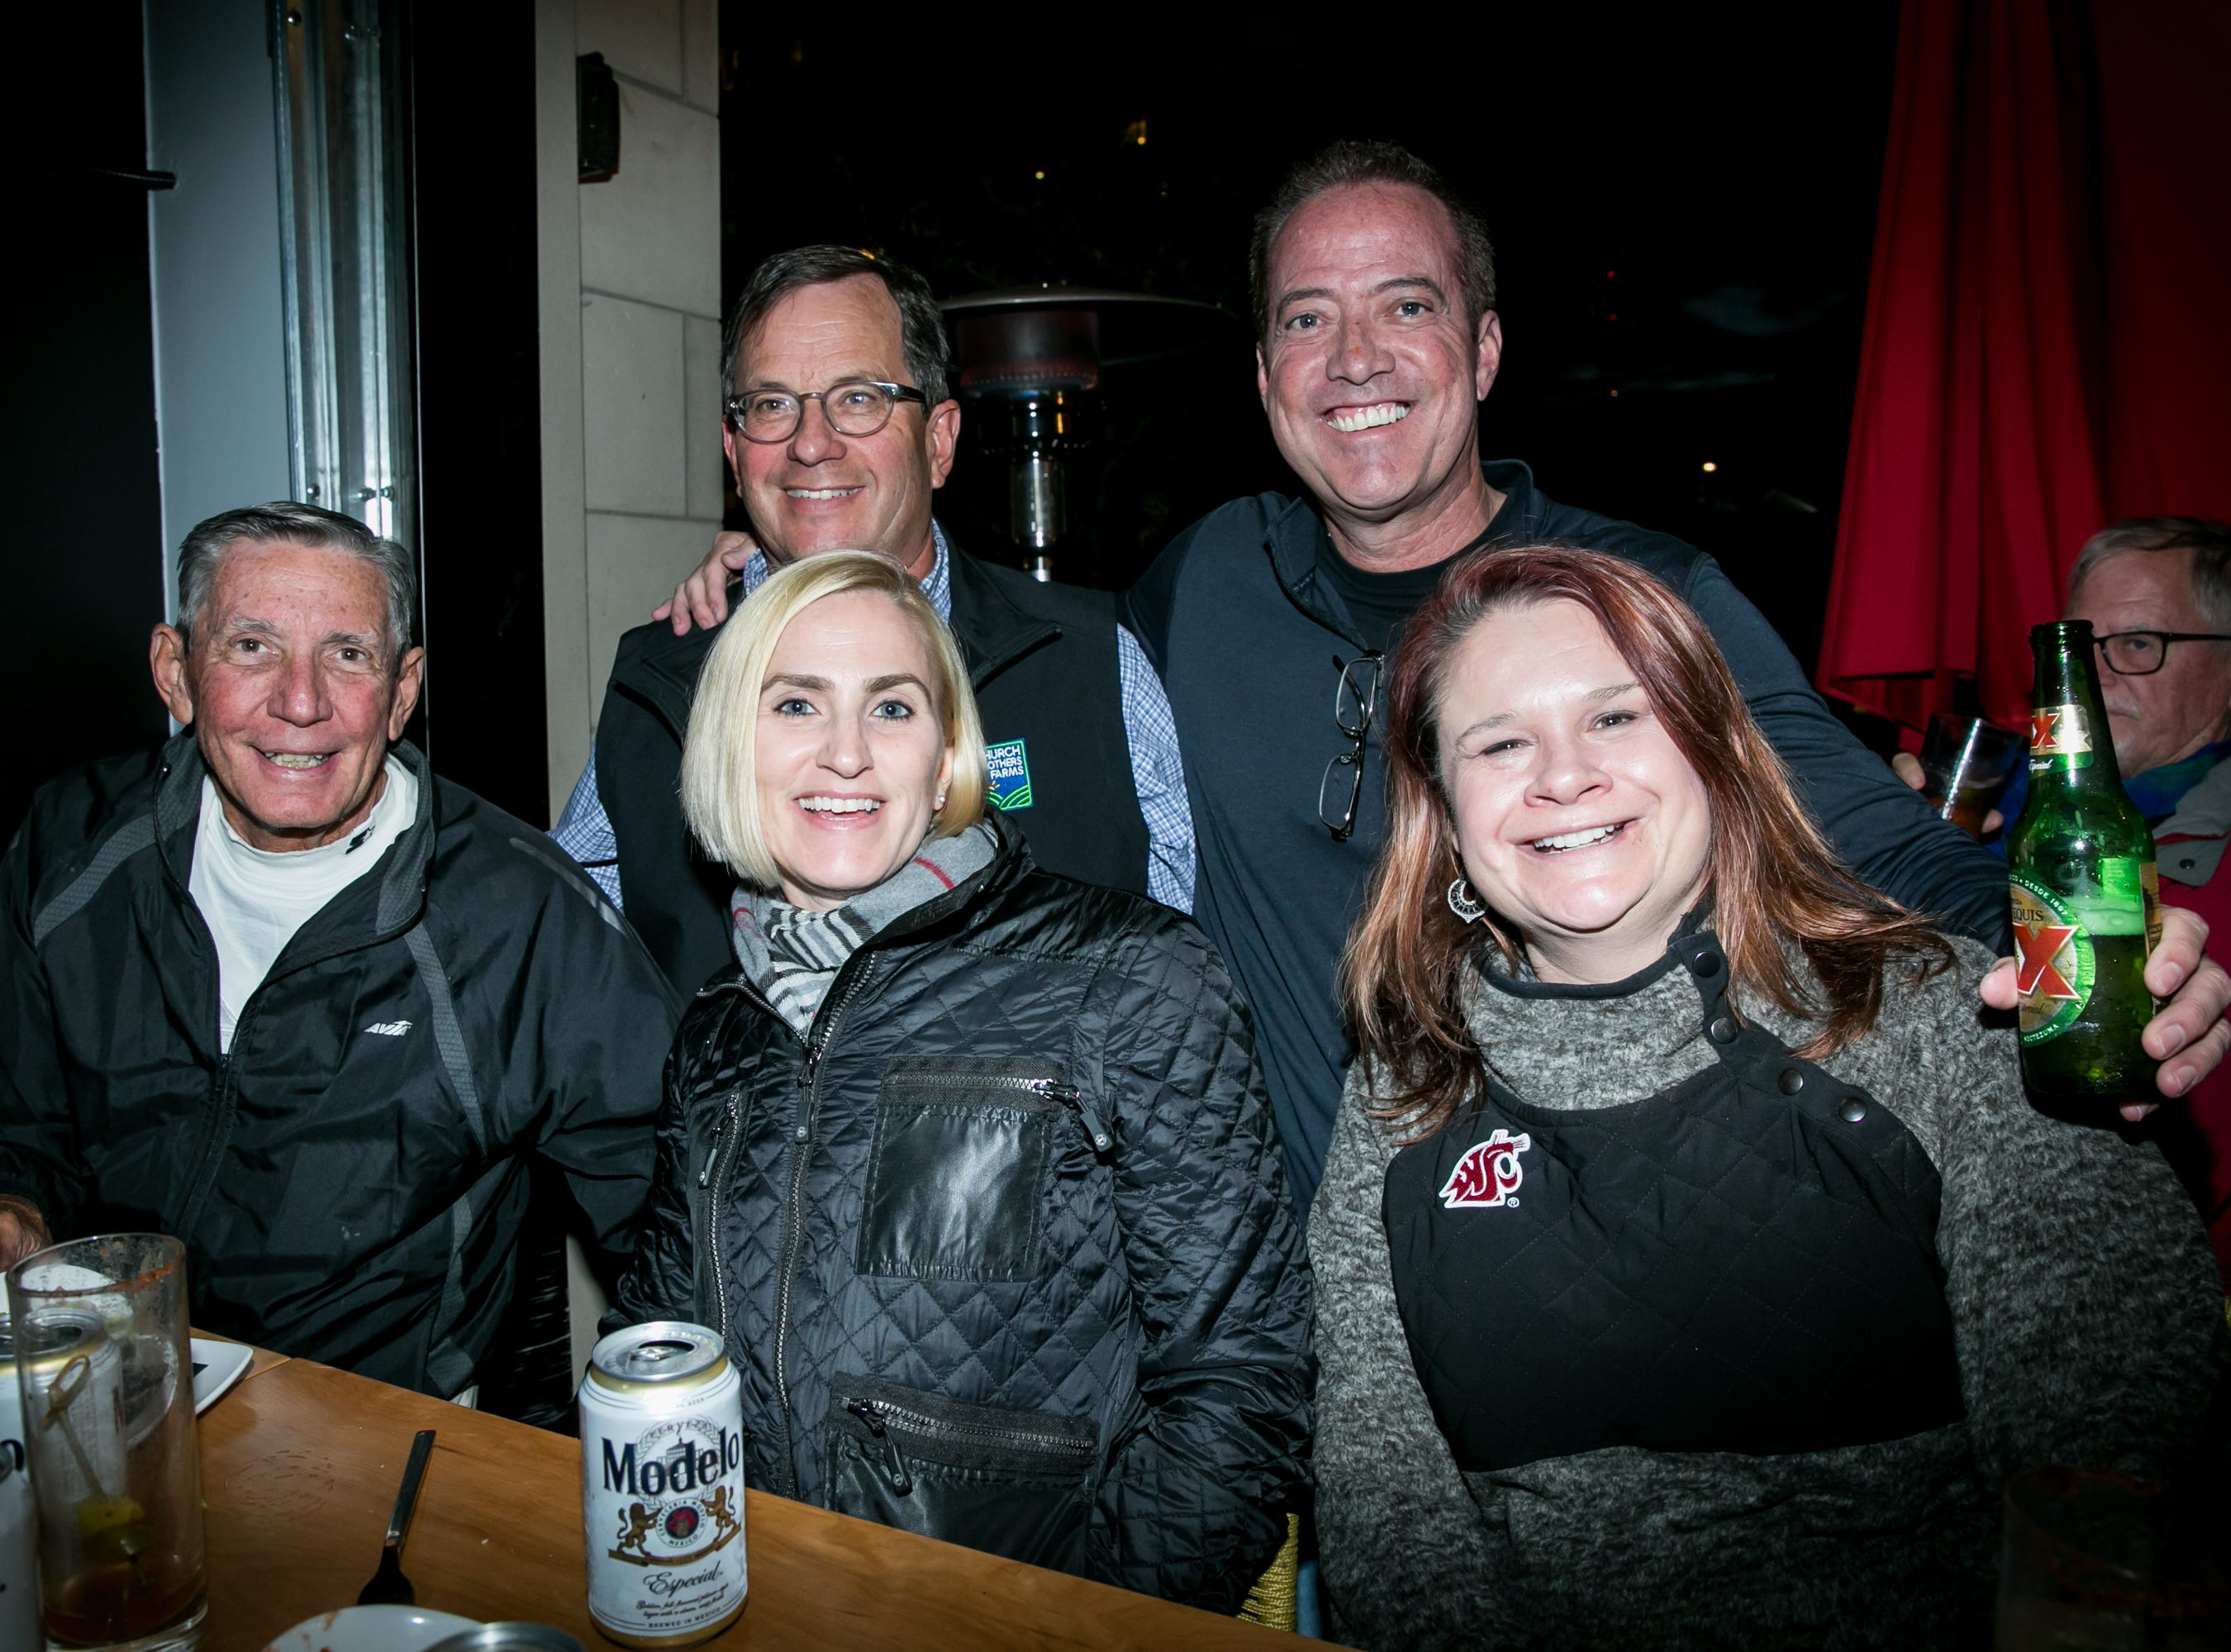 This group has a splendid time during Paz Cantina's Super Bowl Watch Party on Feb. 3, 2019.